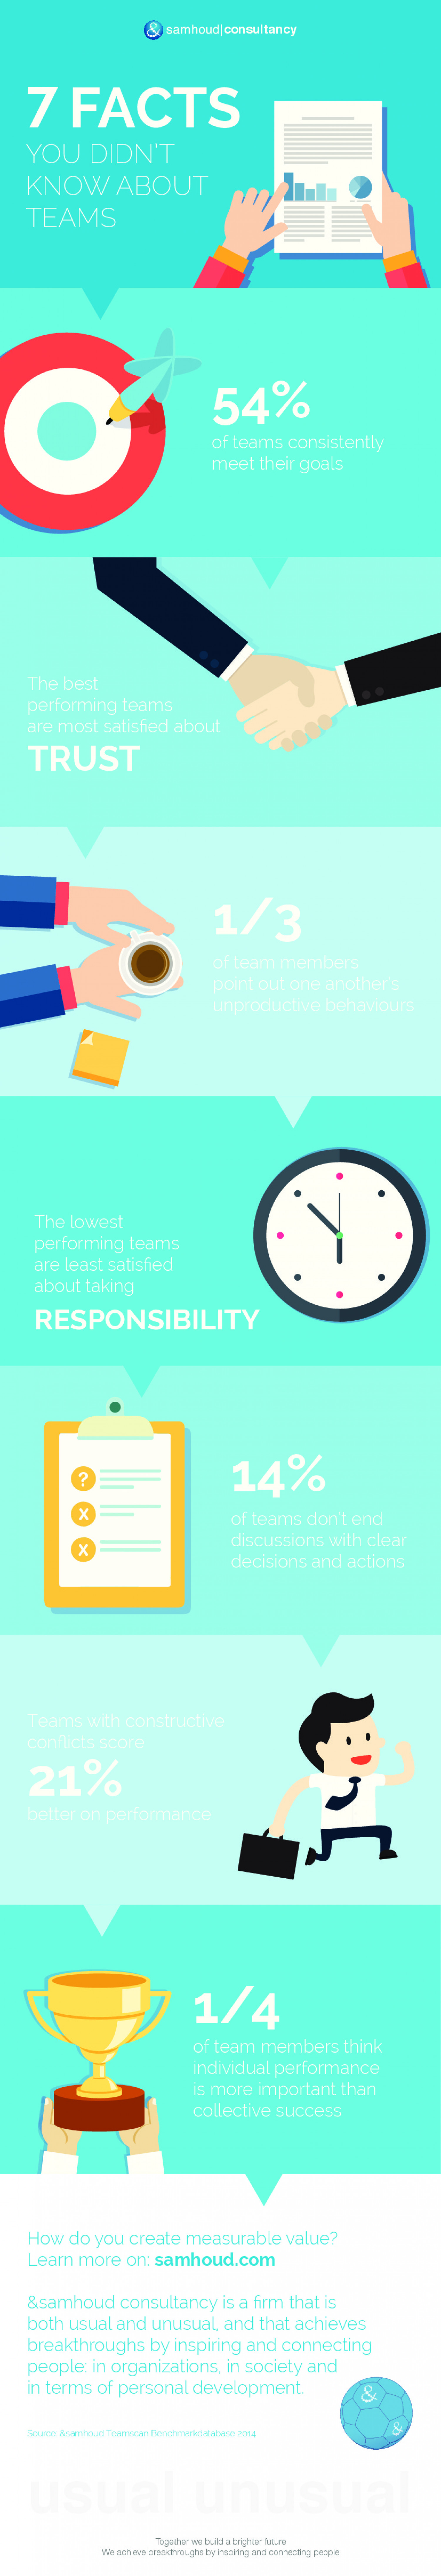 7 facts you didn't know about teams Infographic